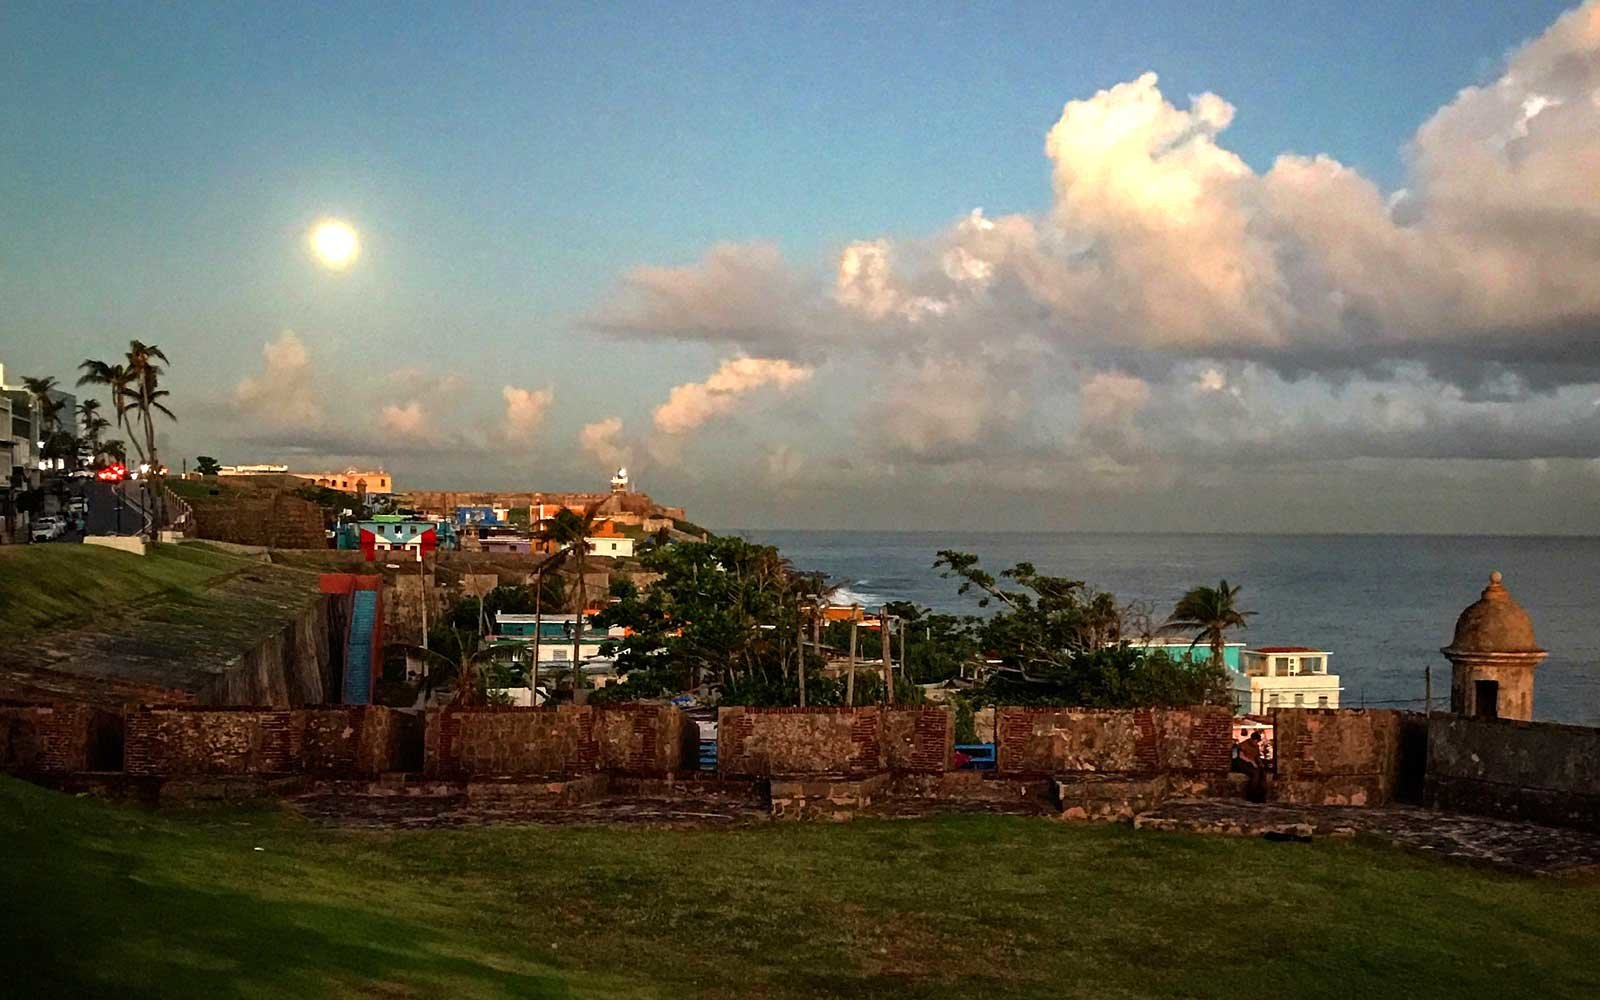 The sun comes out in the Tropical island of Puerto Rico.